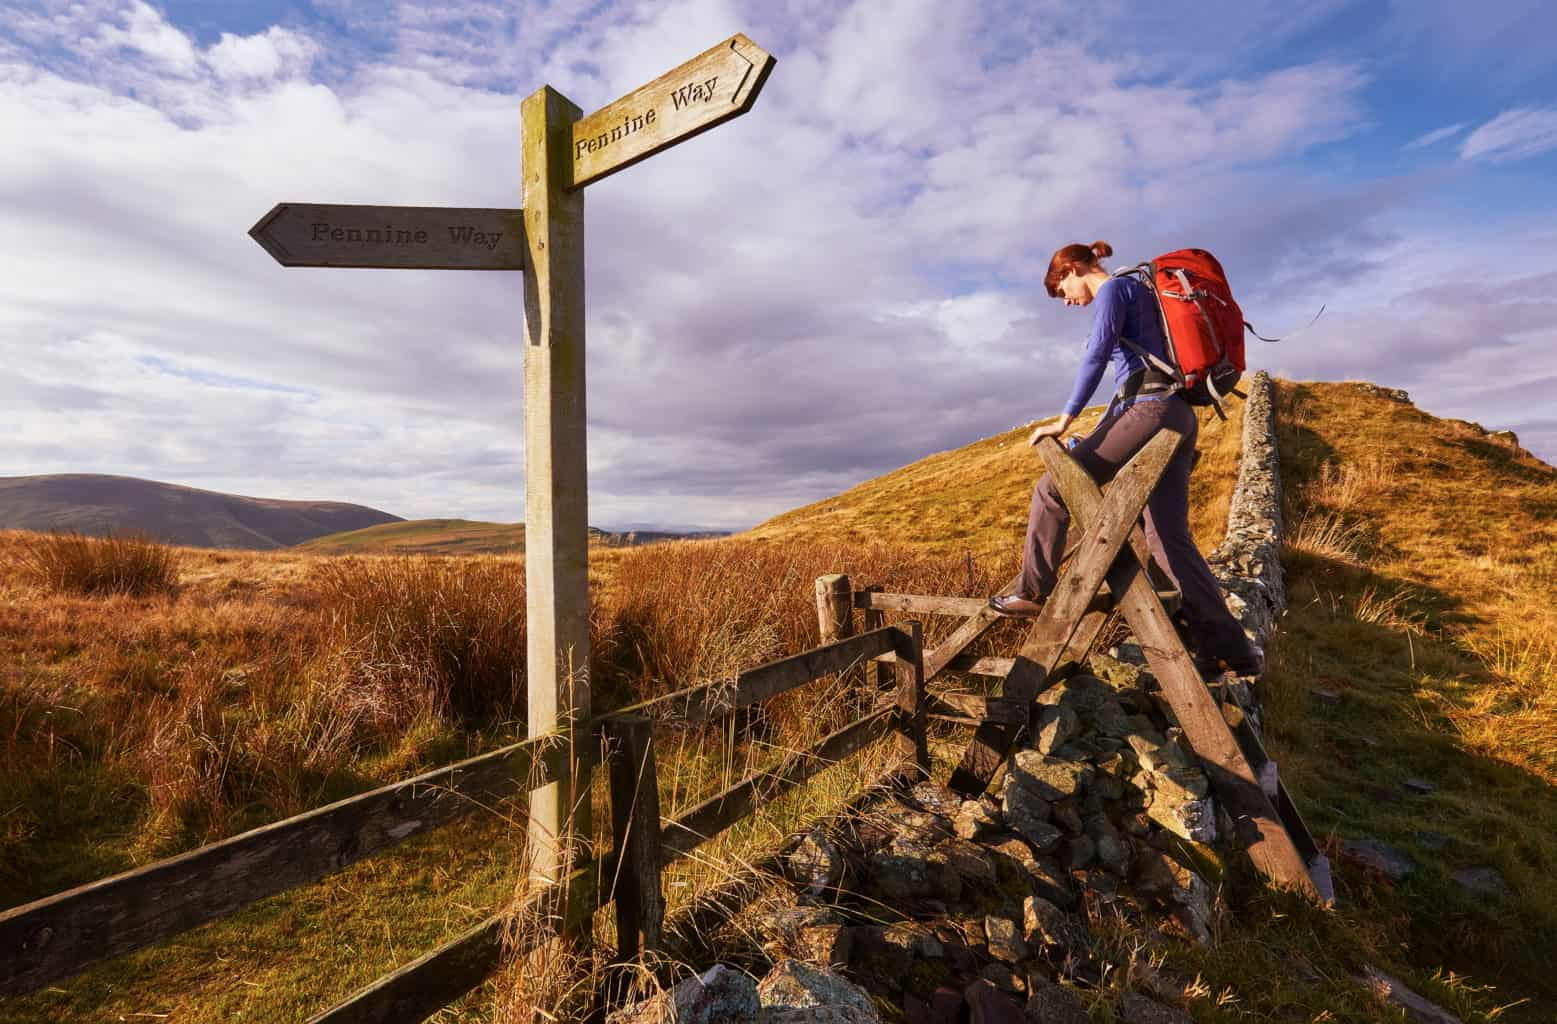 Woman crossing a stile on the Pennine way